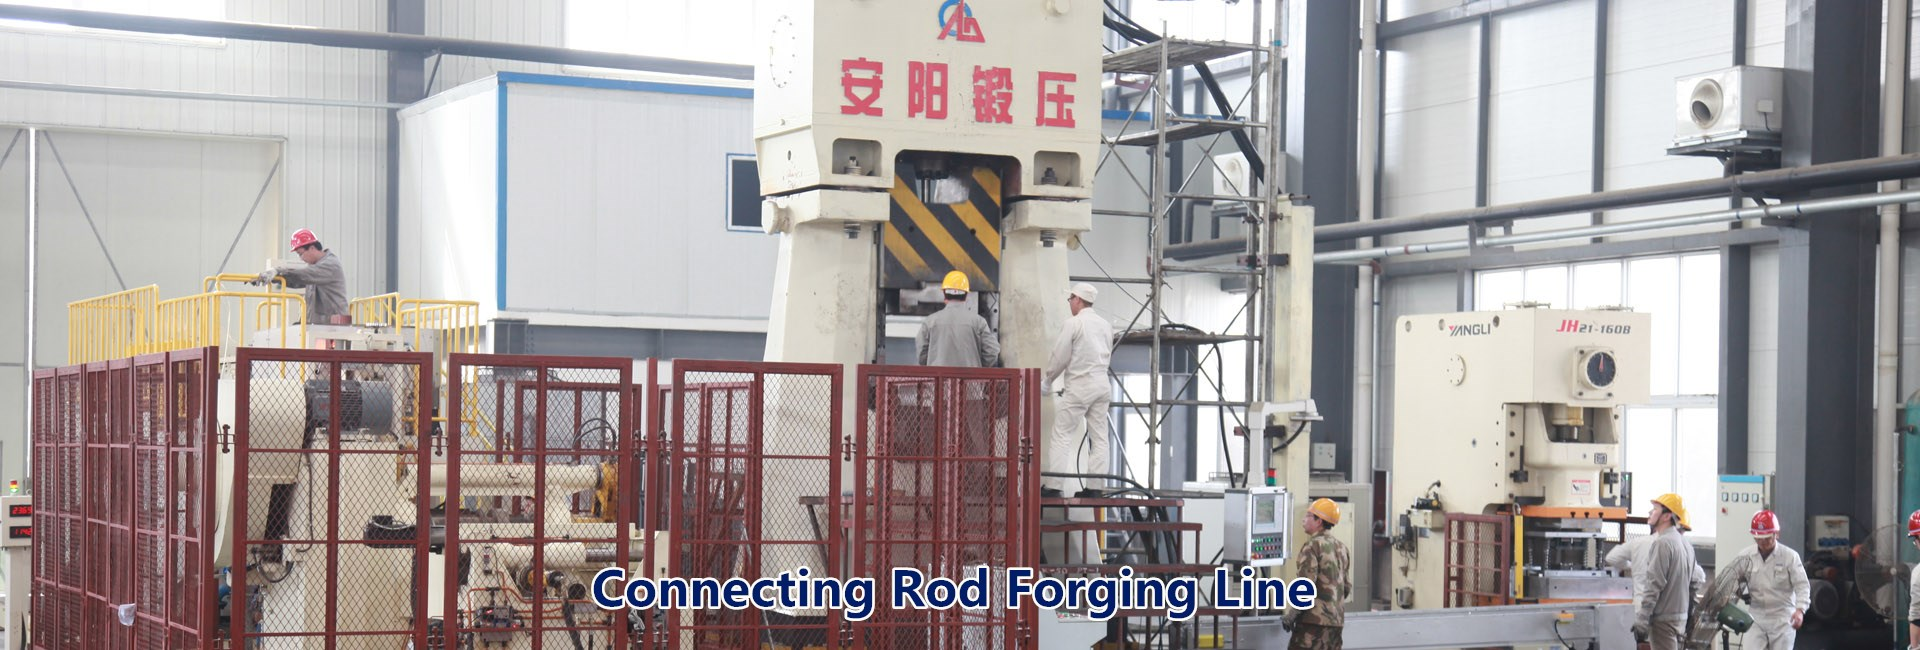 connecting rod forging line